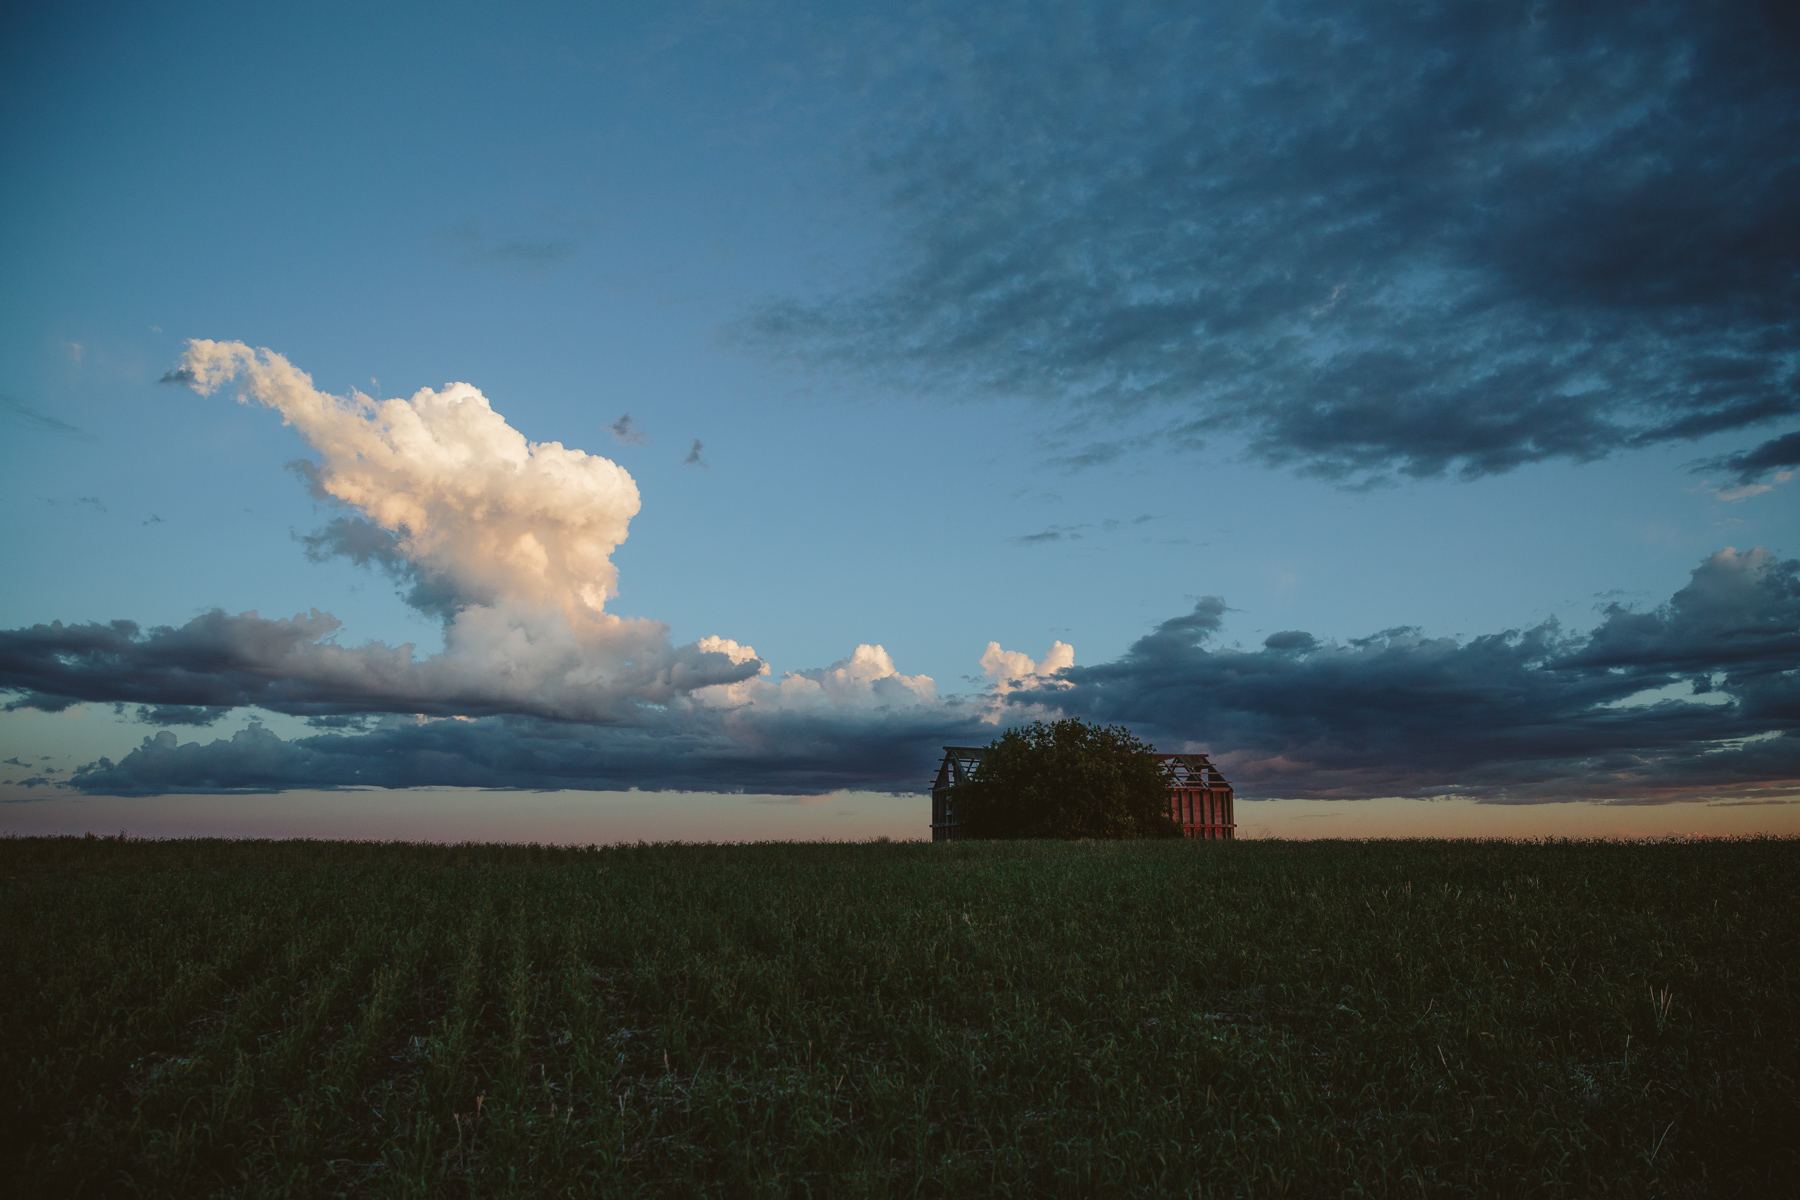 alberta-landscape-lifestyle-photography-mikeseehagel-12